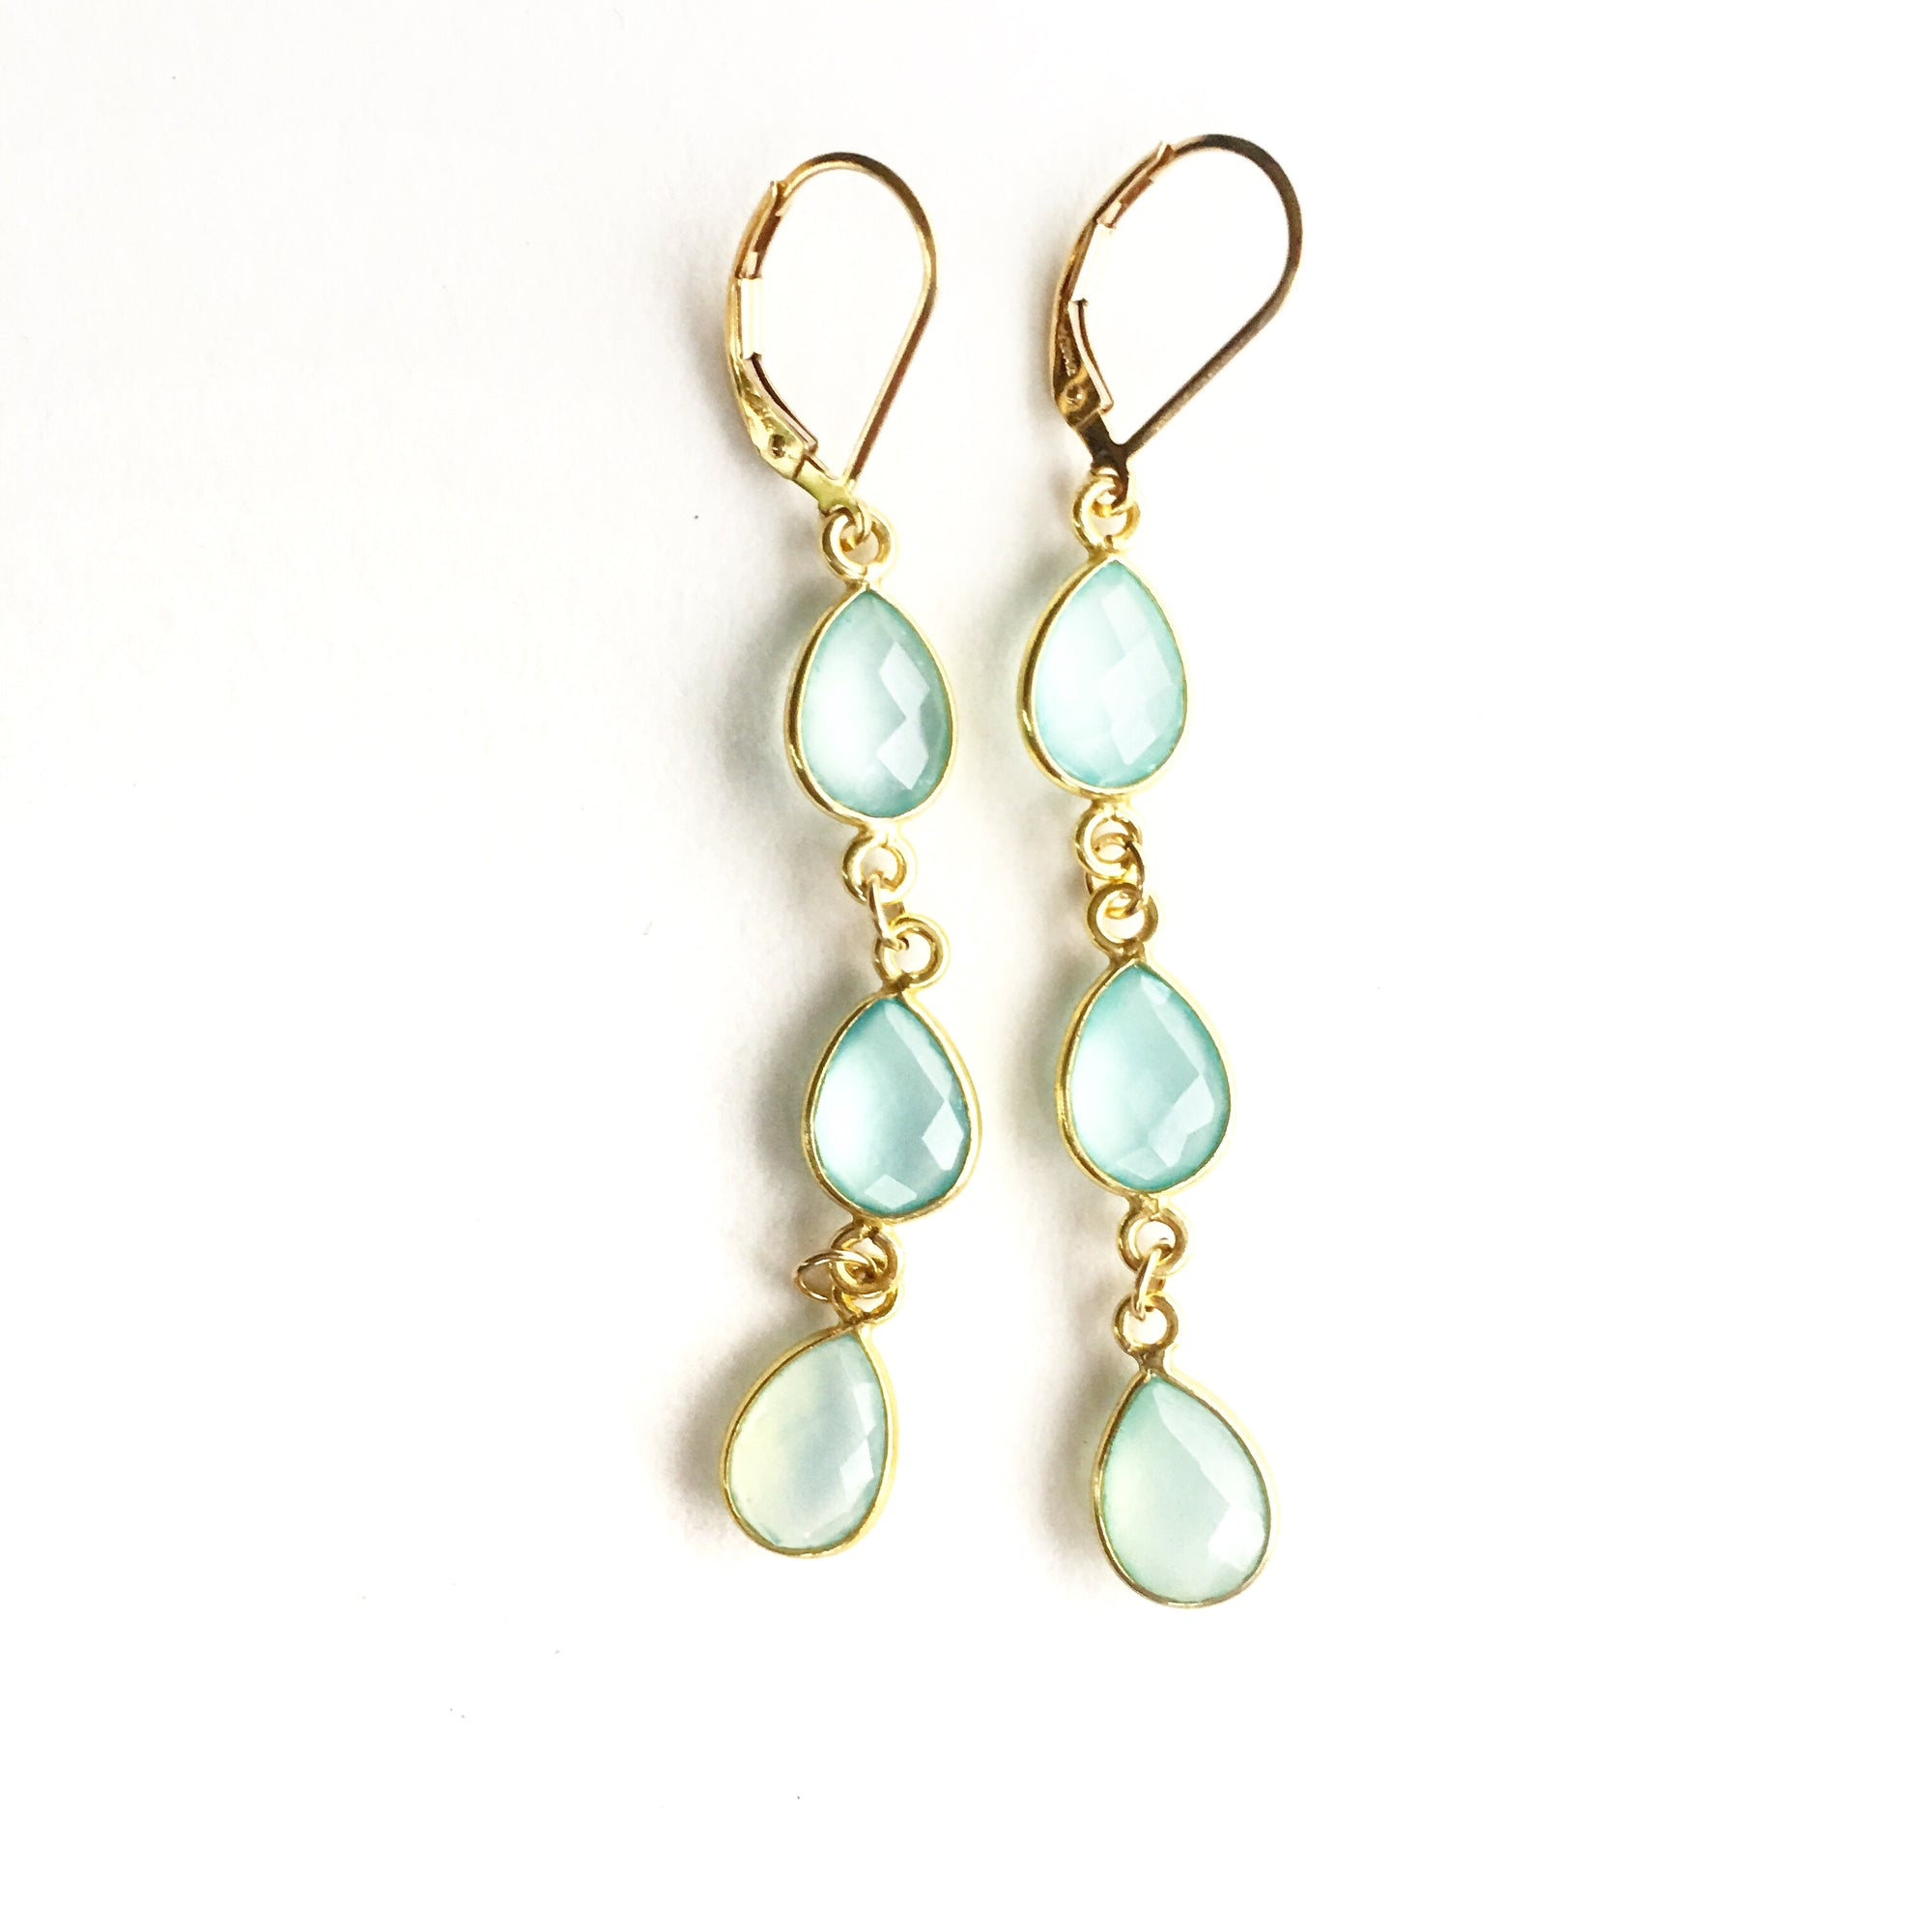 Hamptons Aqua Chalcedony Earrings